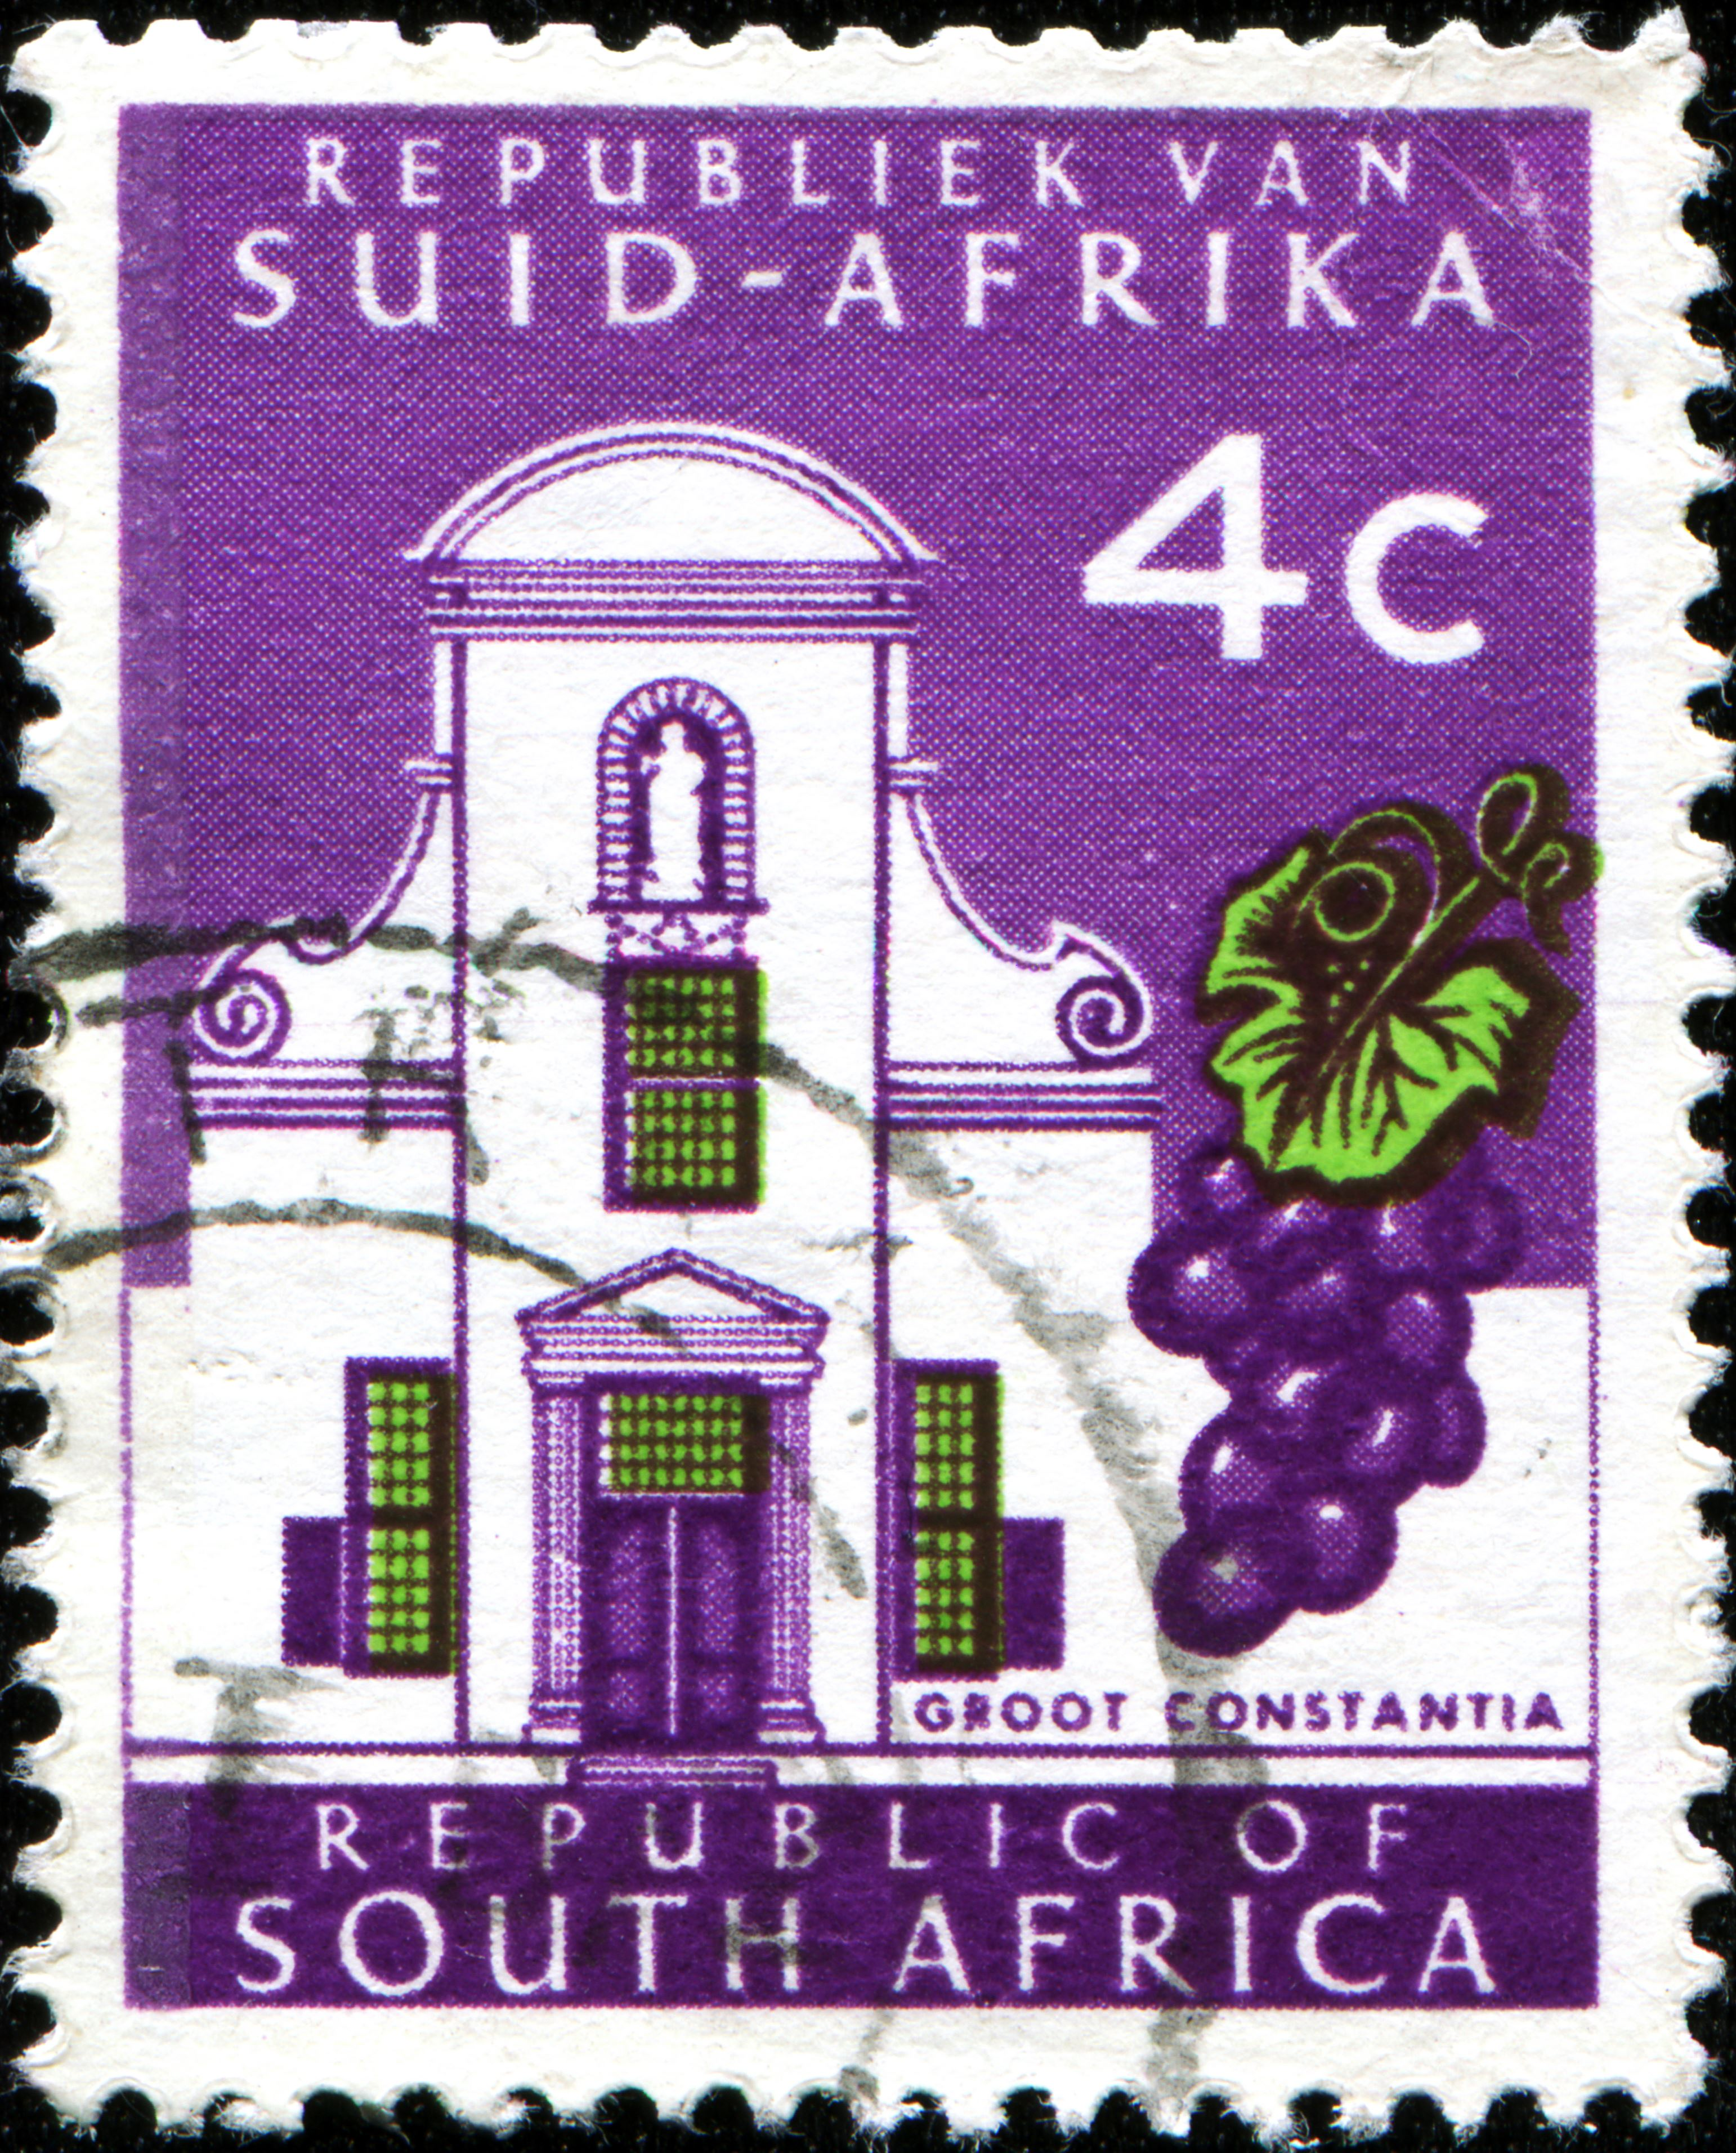 Slide 68 of 70: SOUTH AFRICA - 1961/01/01: CIRCA 1961: A stamp printed in South Africa shows Cape Towns Groot Constantia wine estate. (Photo by Igor Golovniov/SOPA Images/LightRocket via Getty Images)